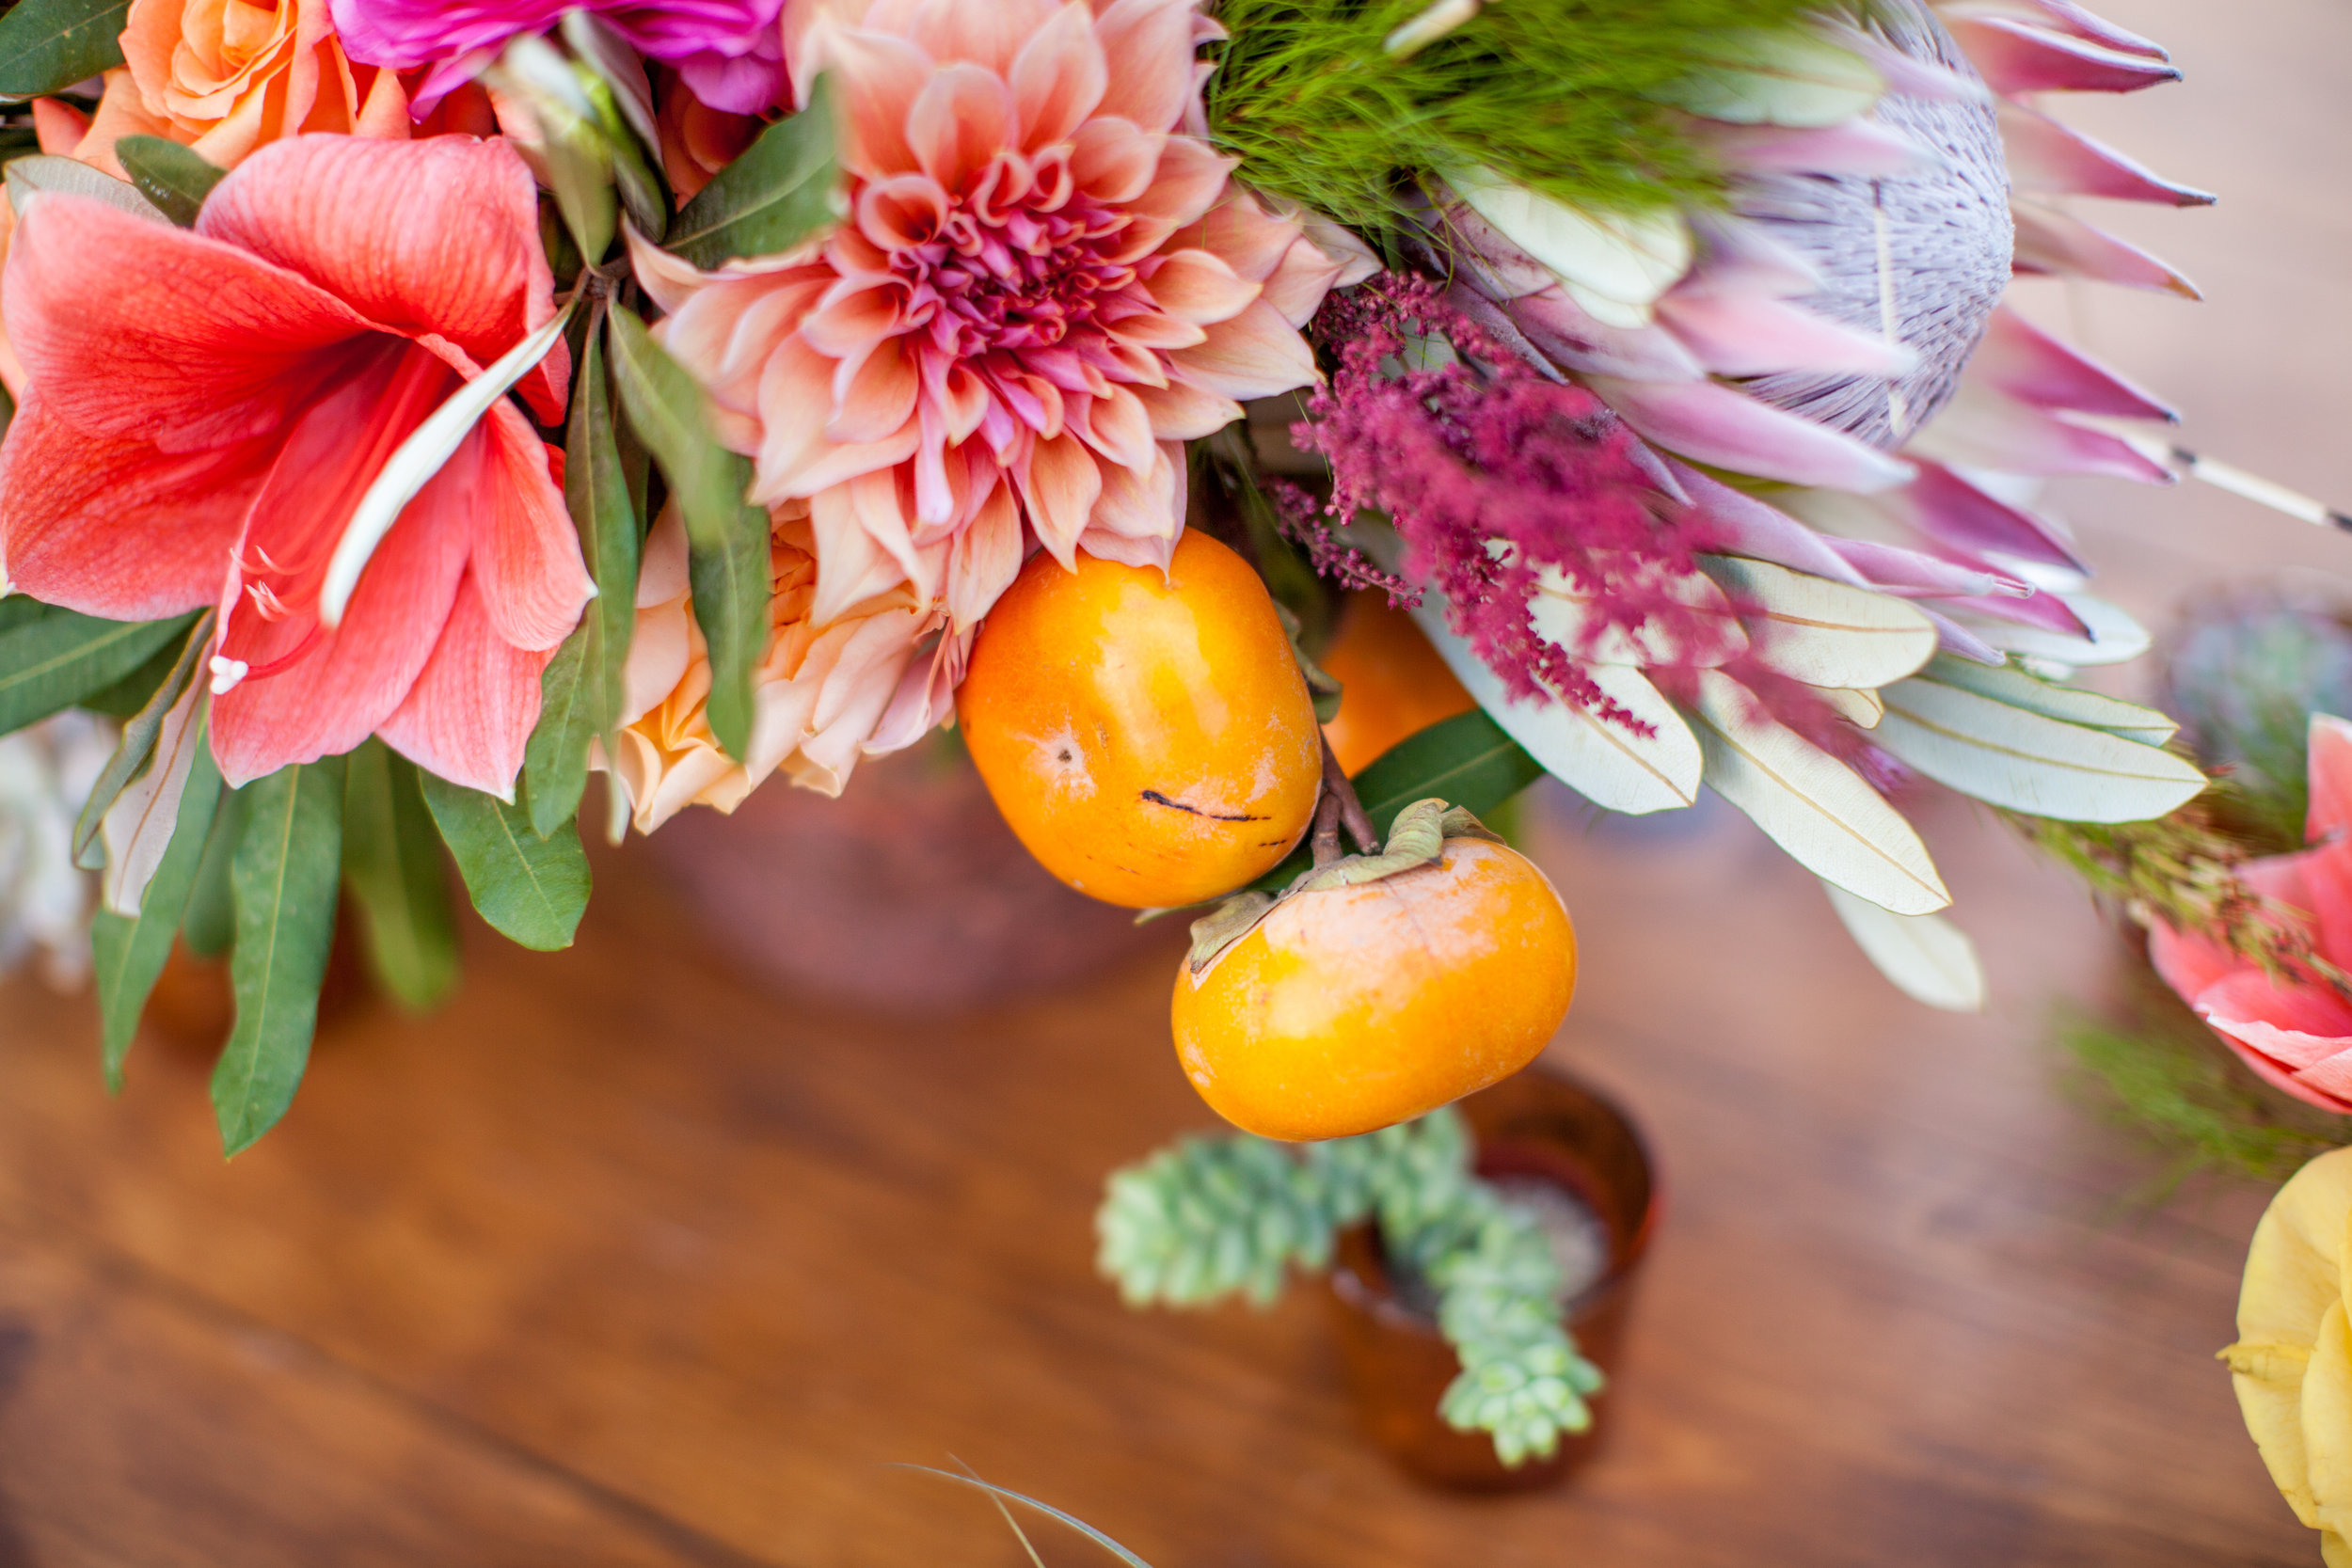 Persimmon and tropical arrangement